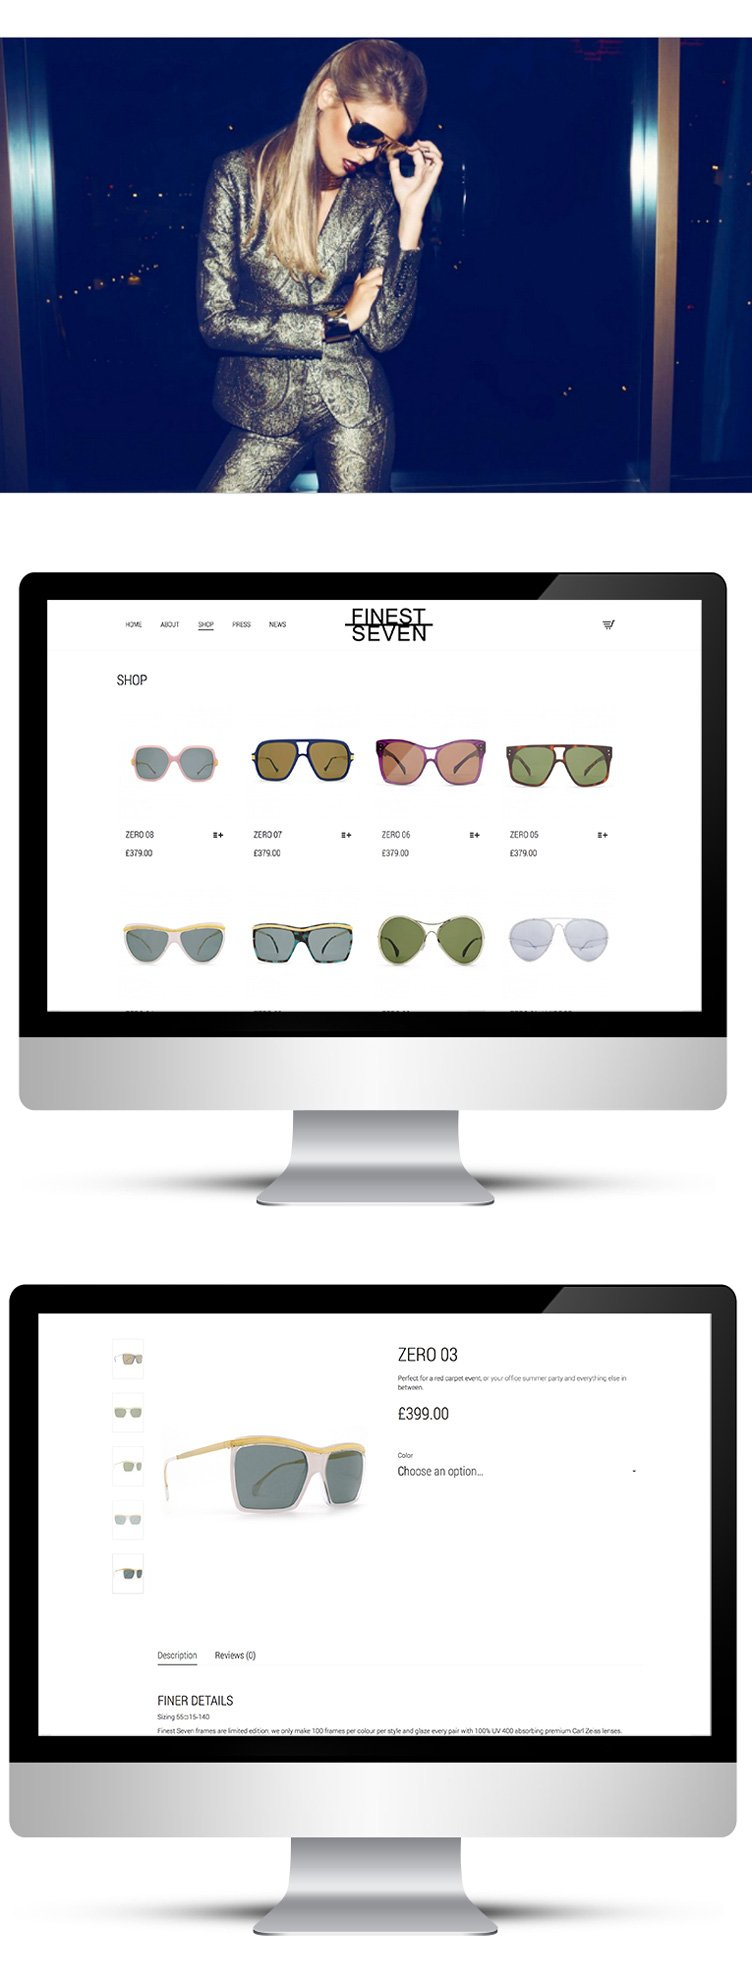 Online store for sunglasses designer in London